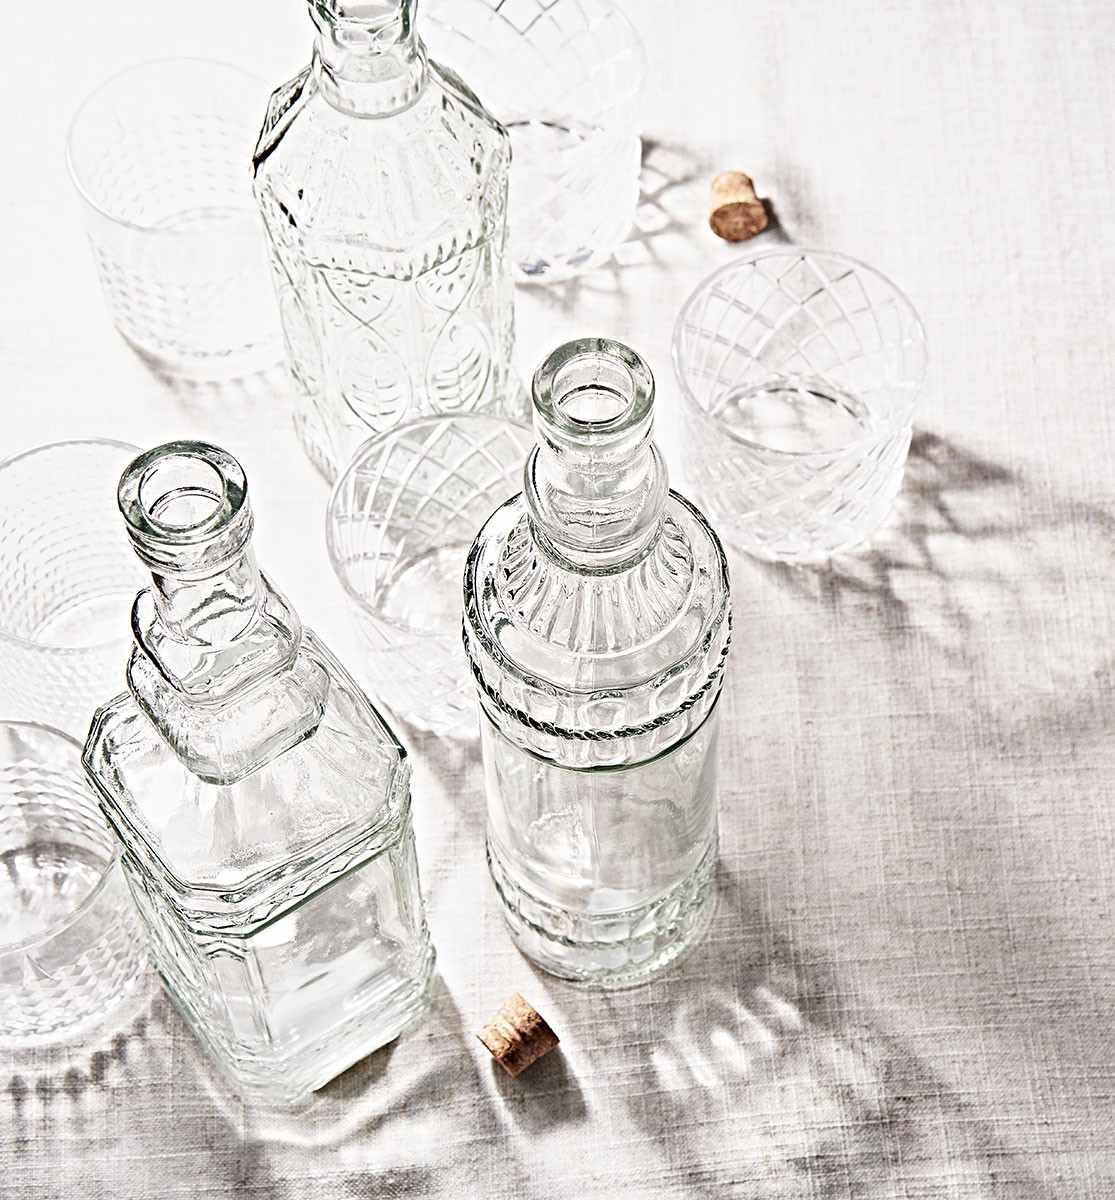 Glassware with shadows on a linen table.